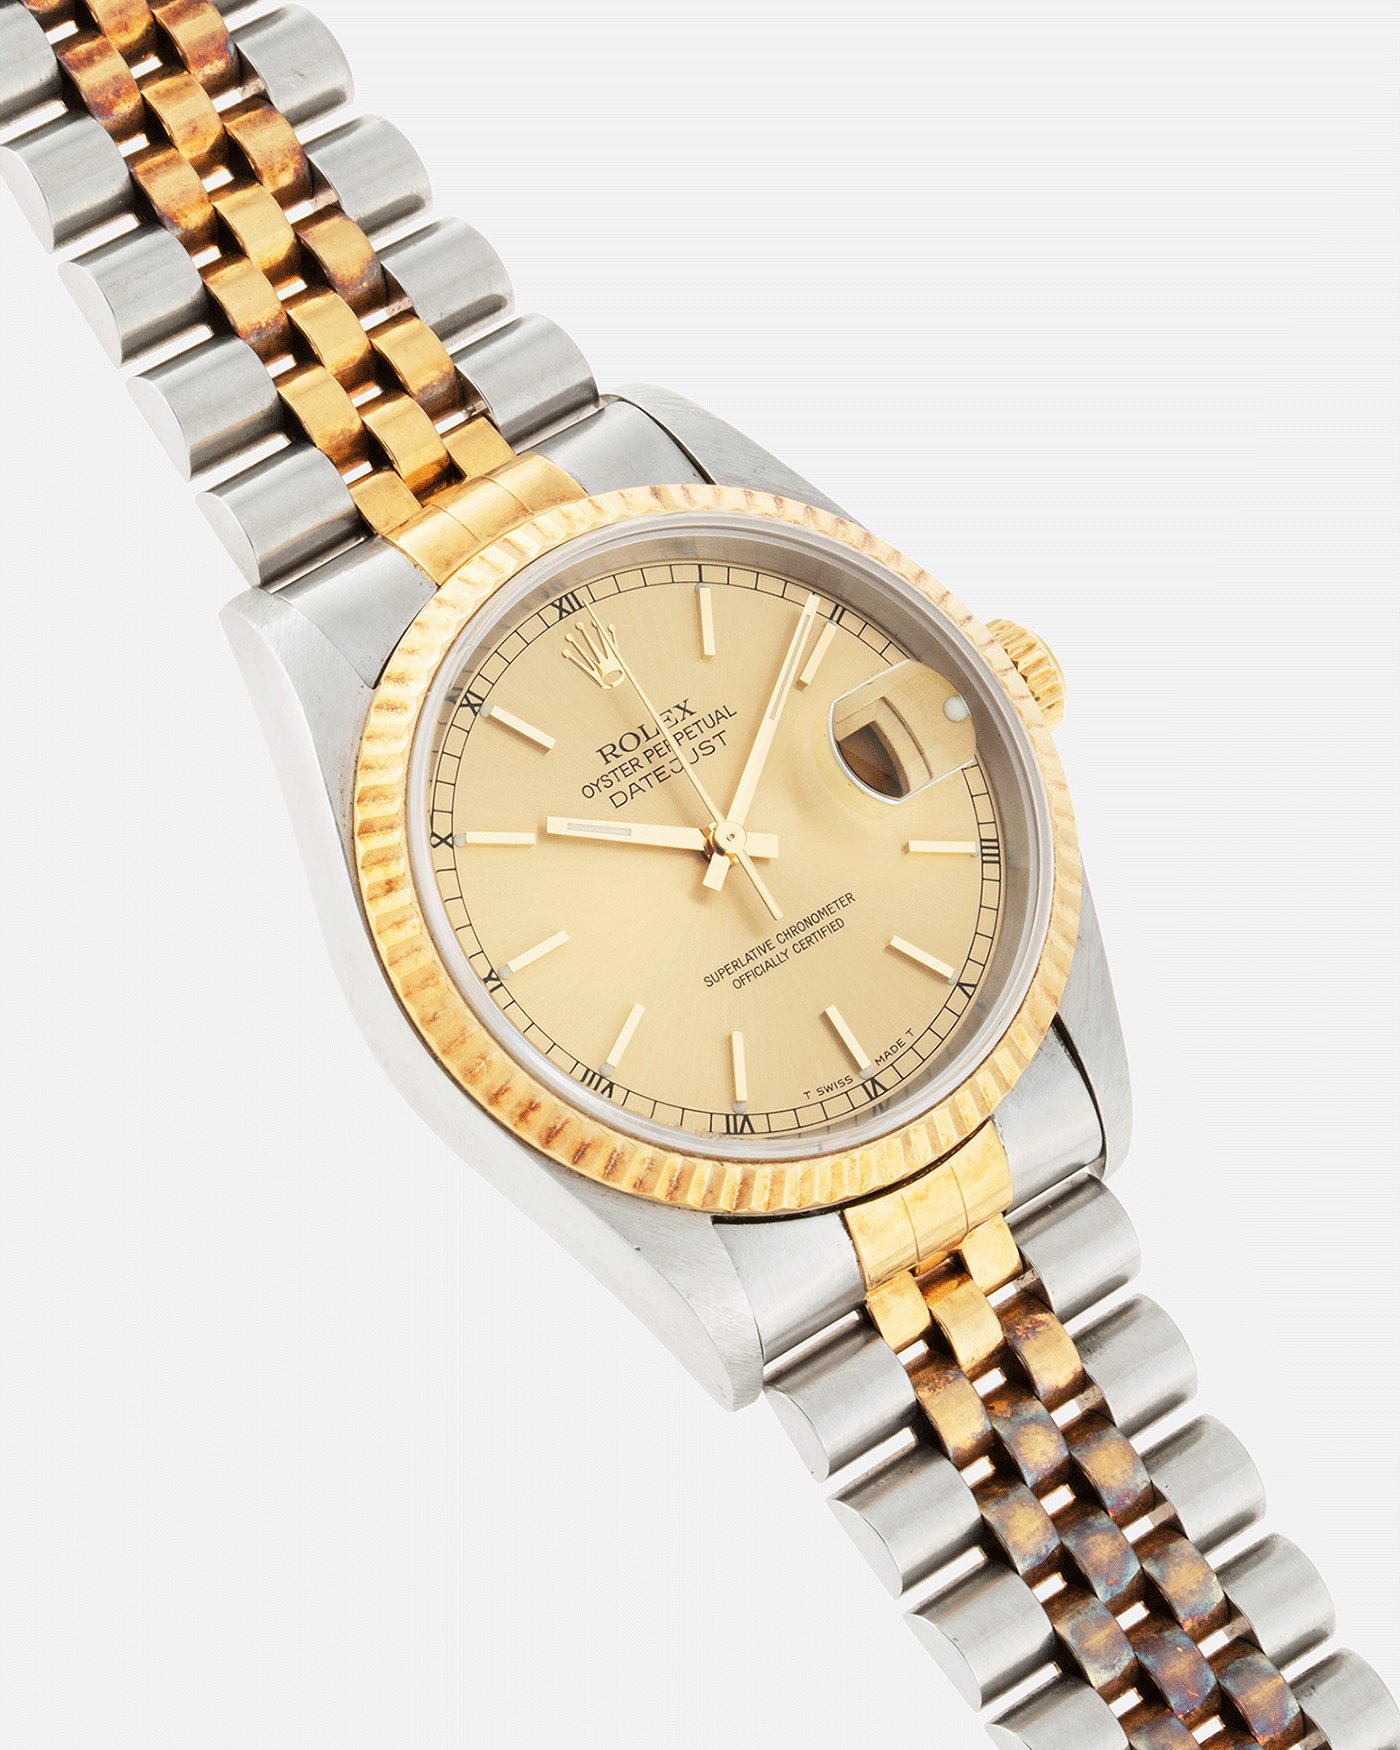 Rolex Datejust 16233 Two-Tone